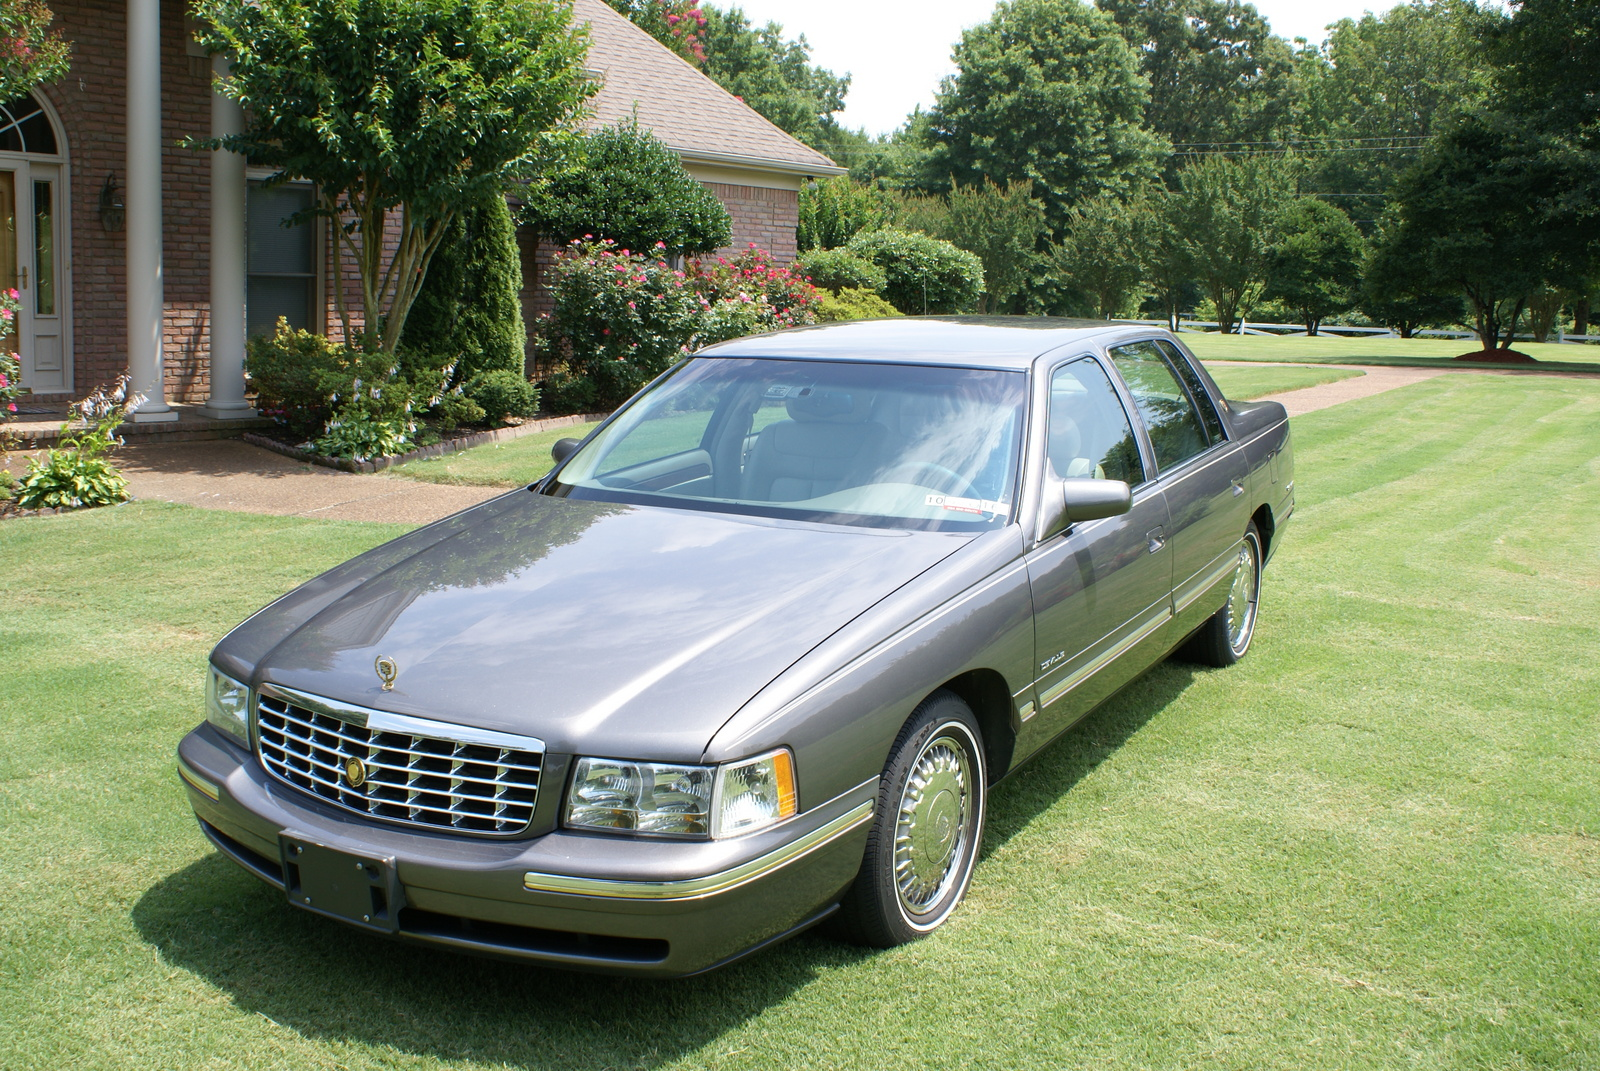 1999 cadillac deville exterior pictures cargurus. Cars Review. Best American Auto & Cars Review